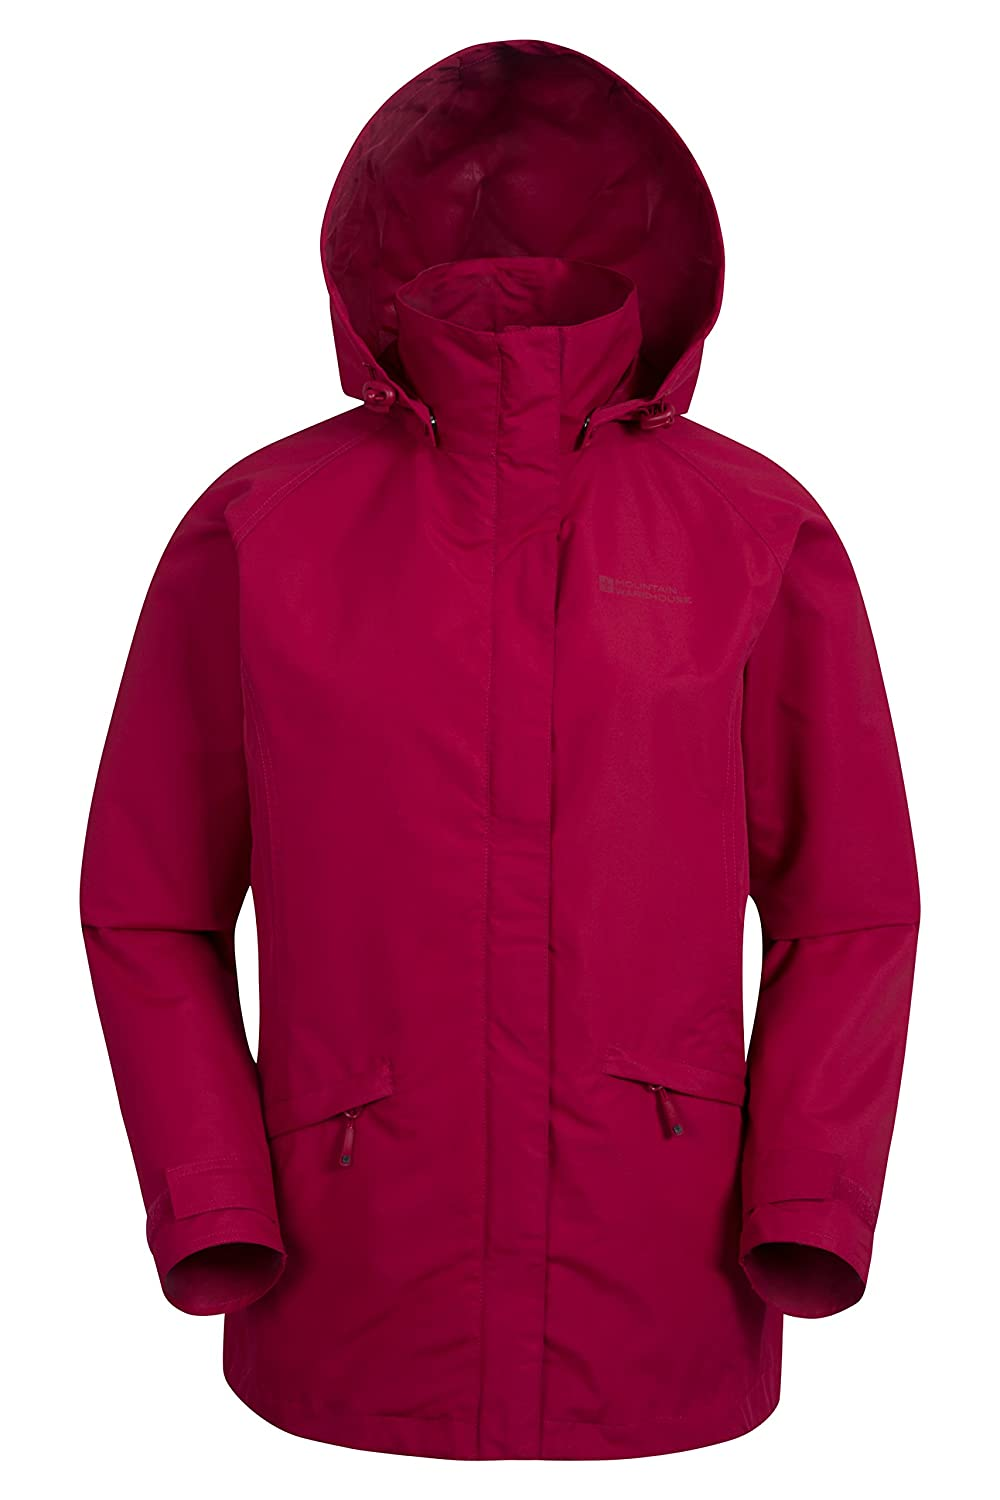 Mountain Warehouse Harridge Womens Shell Jacket -Spring & Summer Coat Fuchsia 8 024917060004